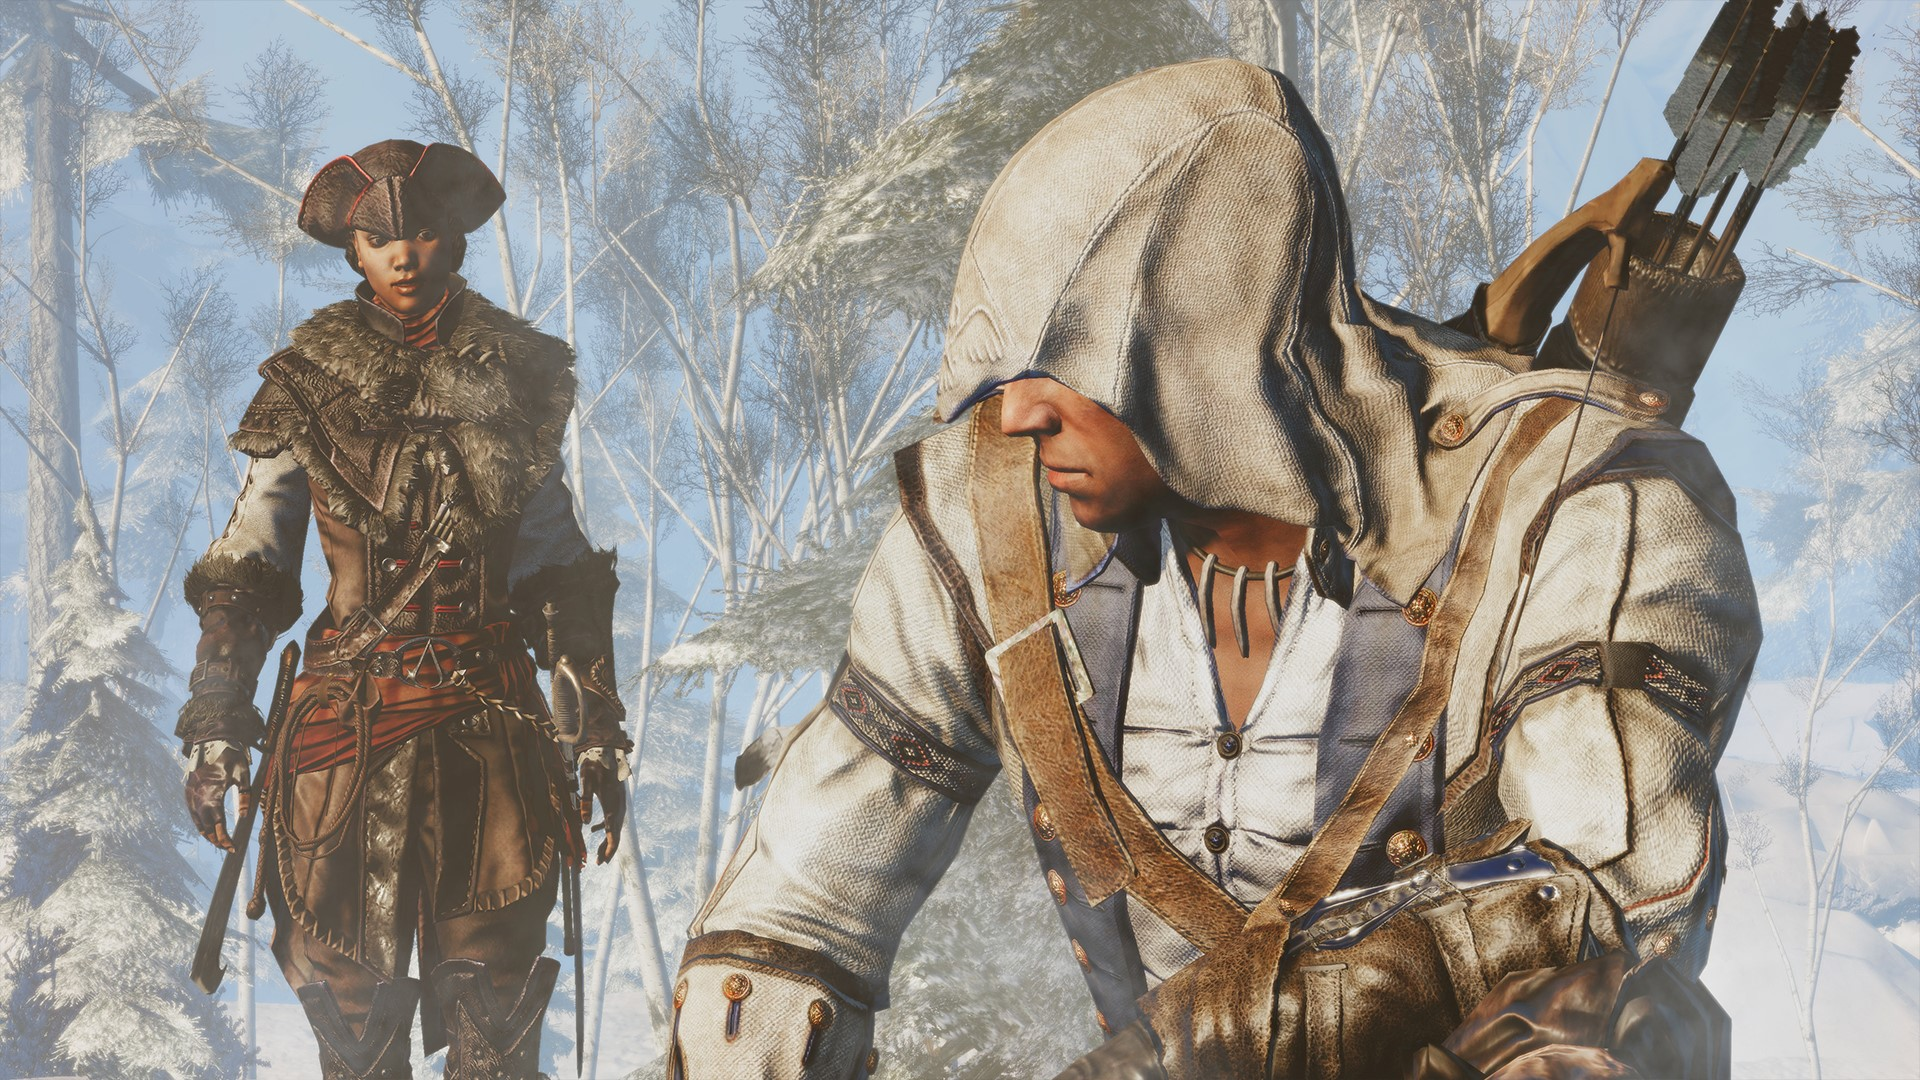 przeci assassins creed iii - HD 1920×1080